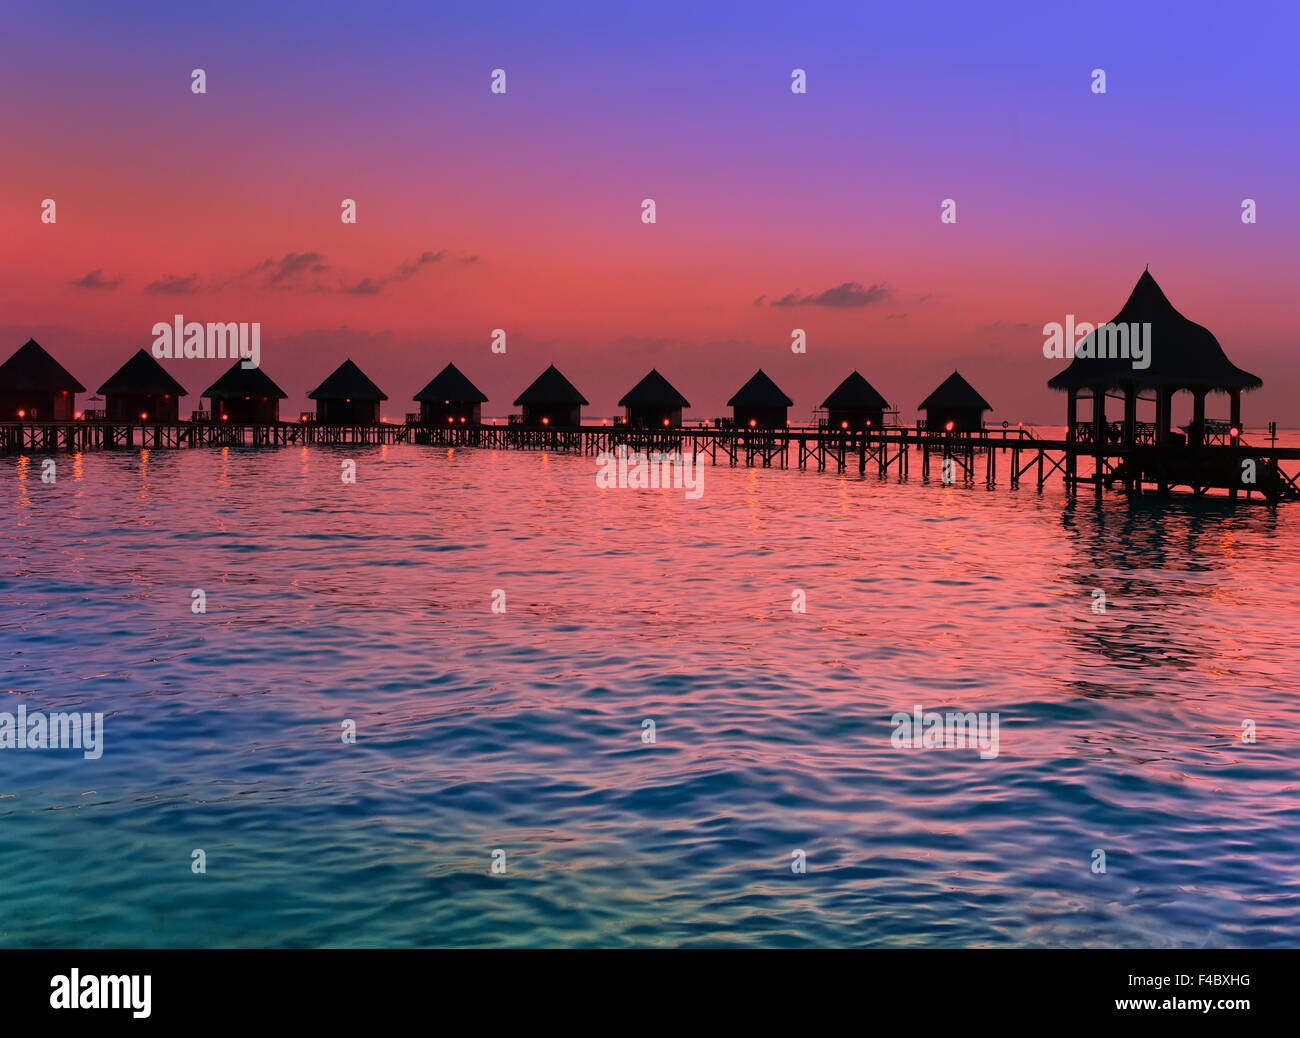 Island in ocean, Maldives.  Sunset. - Stock Image